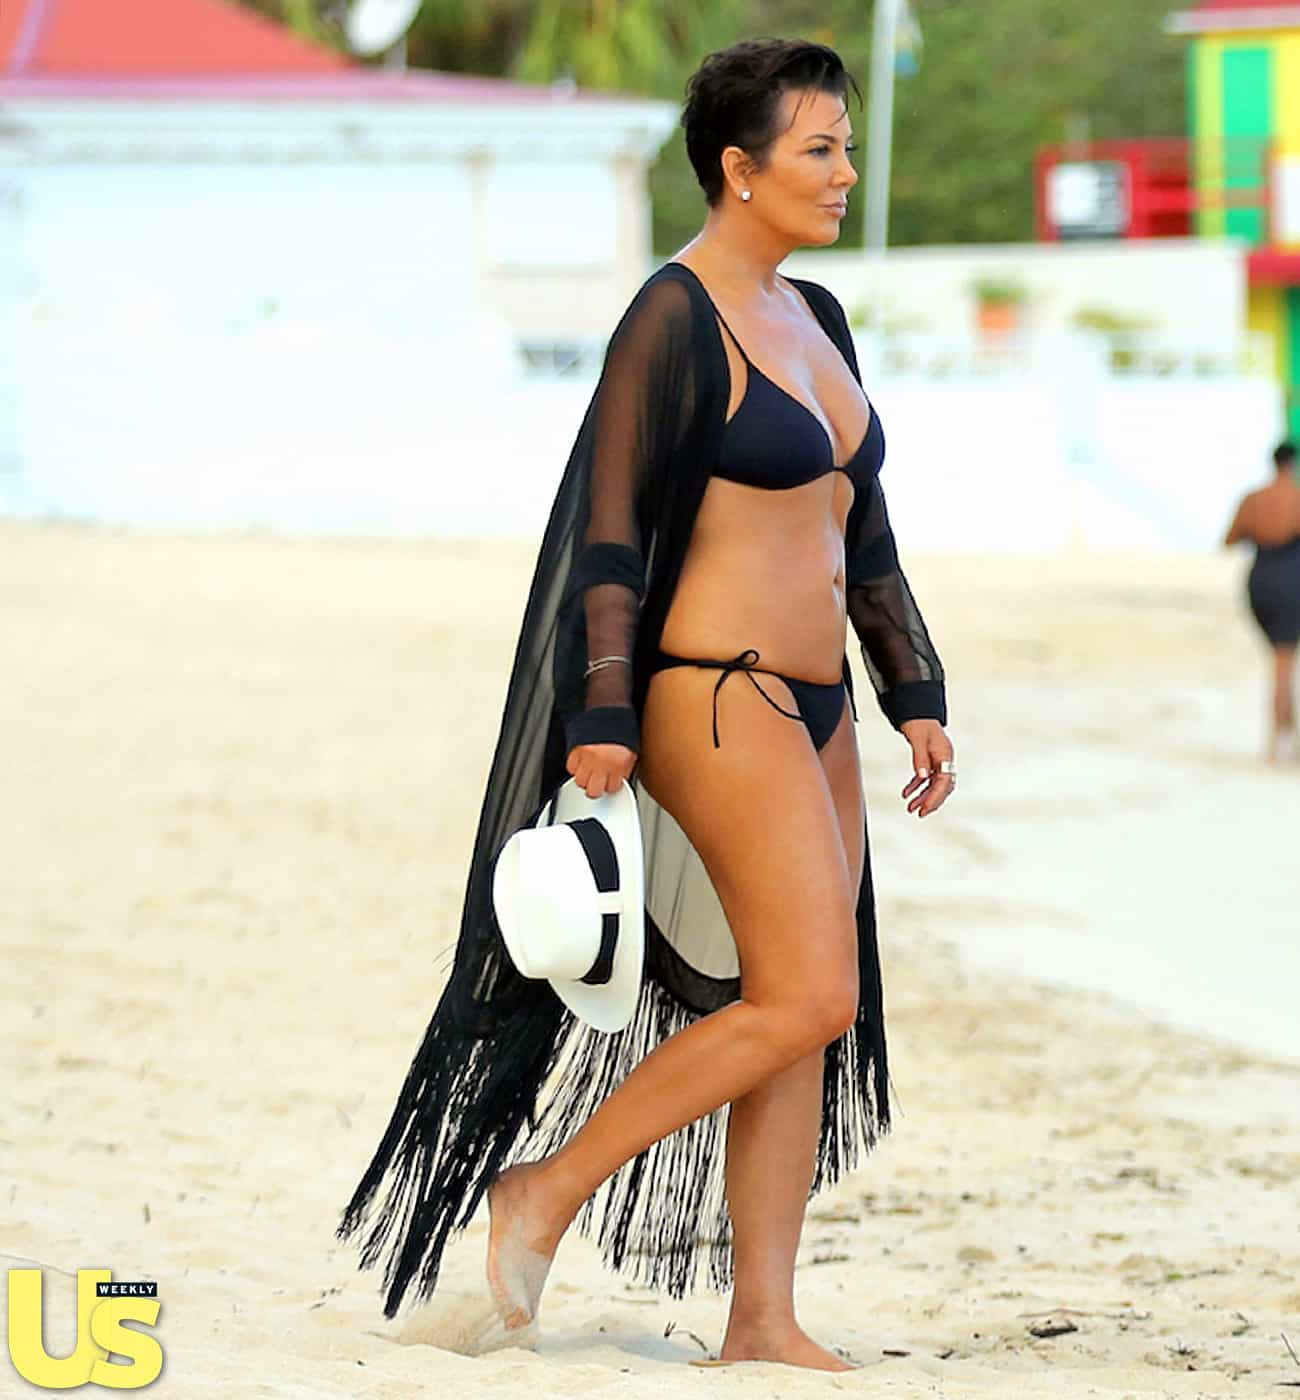 21 Bikini-Clad Celebs Over 50 Who Prove Age Is Nothing But